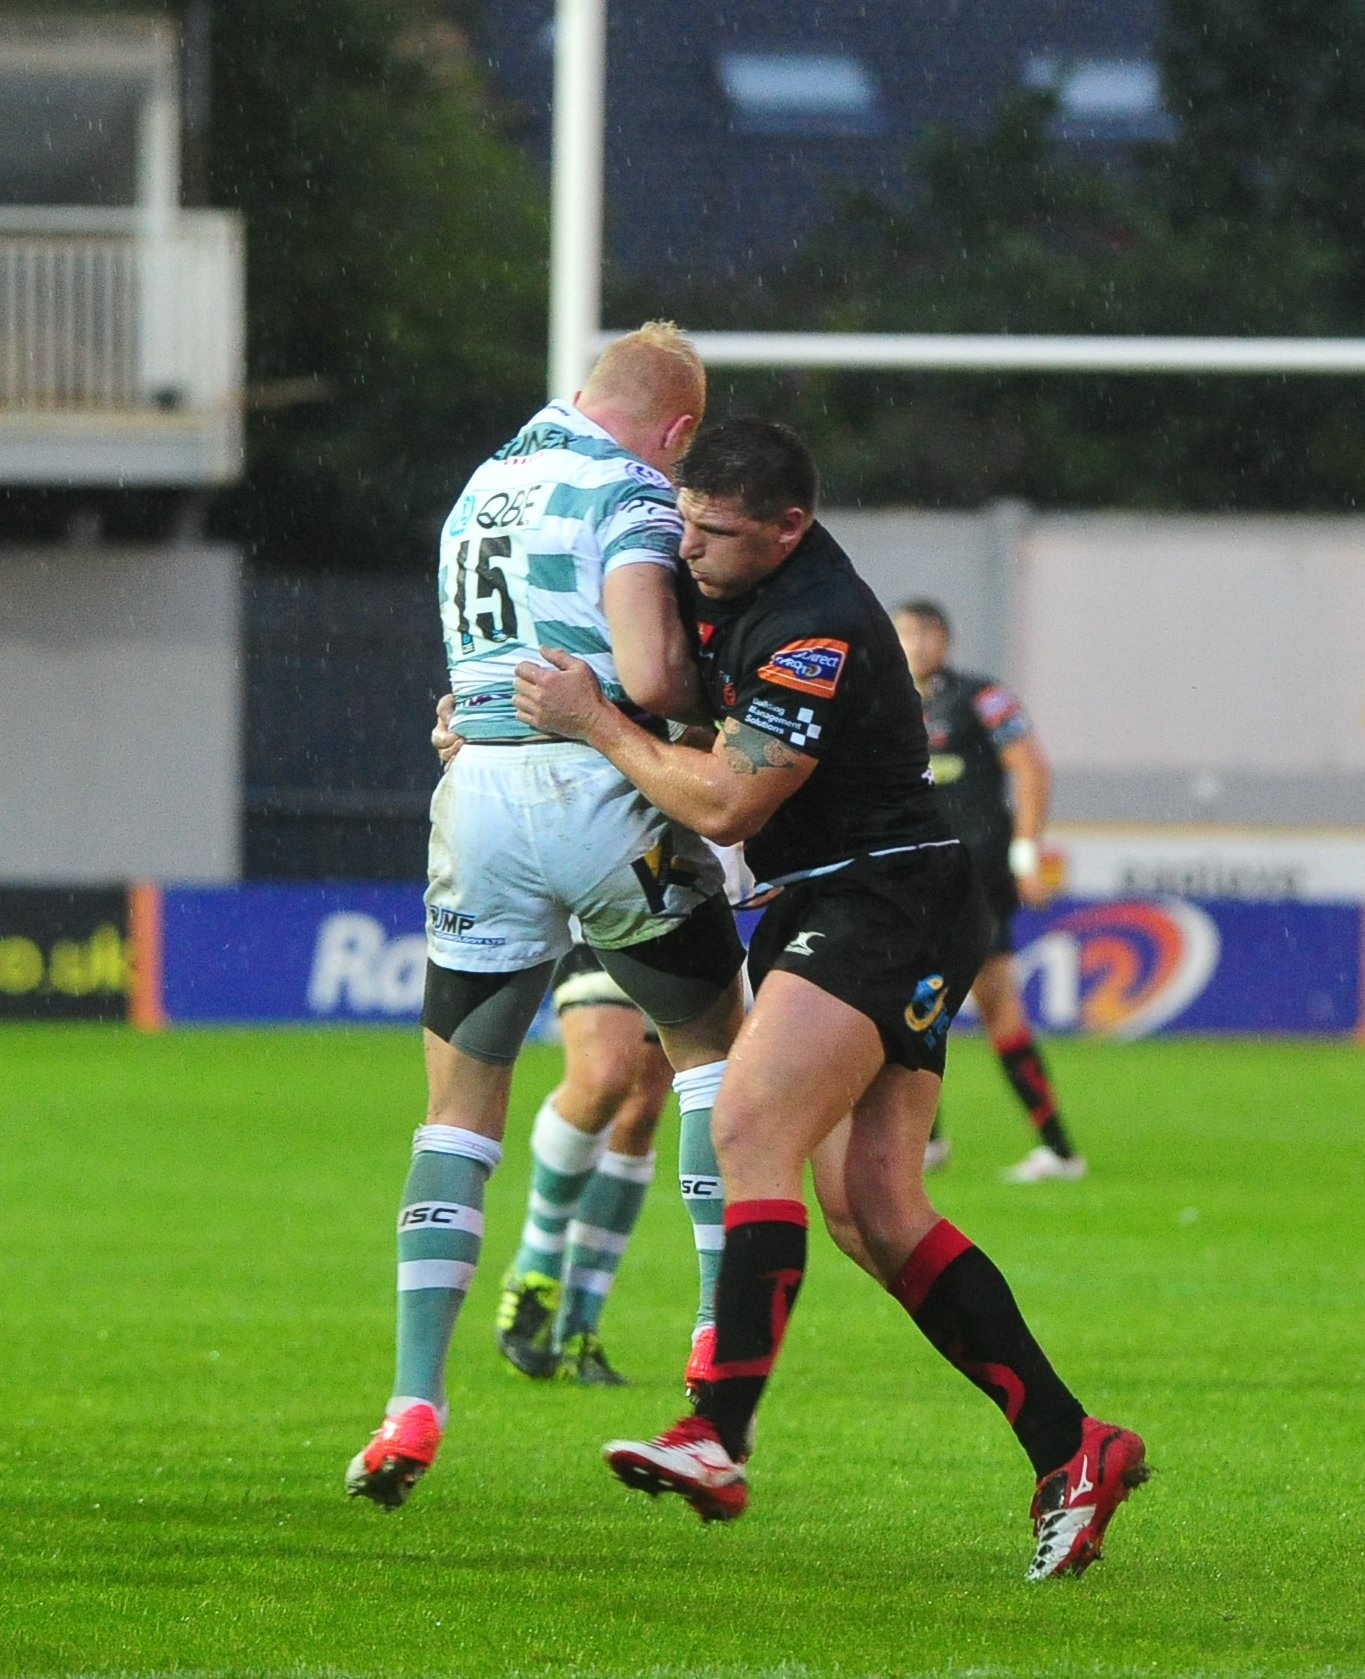 MM 17.8.12  NEWPORT GWENT DRAGONS V LONDON IRISH  PICTURED DARREN WATERS STOPS MATT GARVEY OF THE IRISH. (913327)